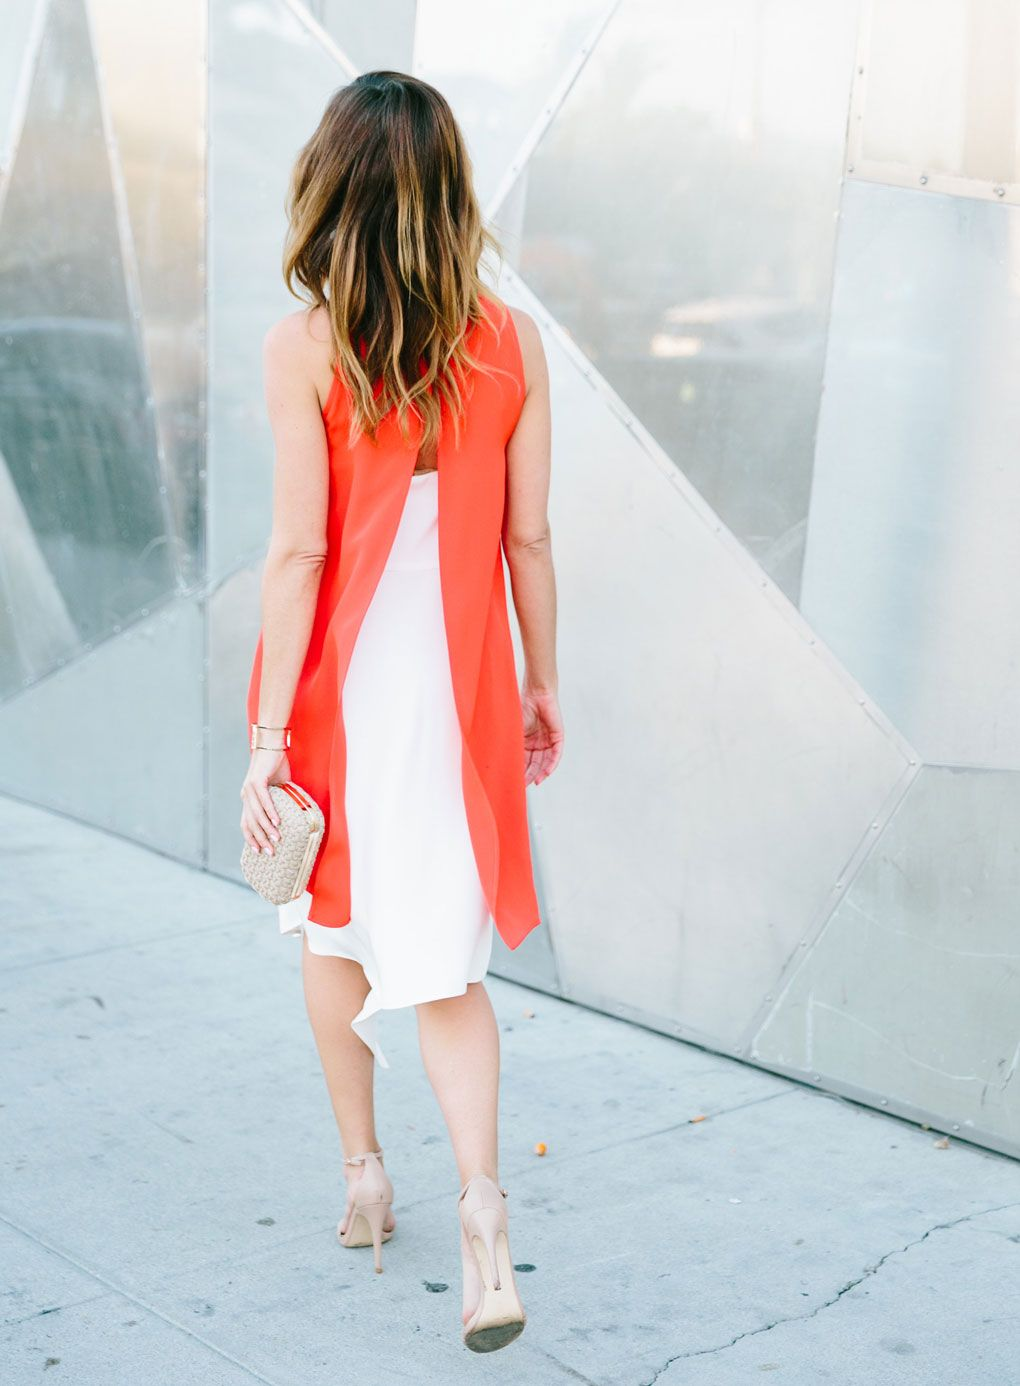 dc9fe540d63 Sydne Style wears an orange and white Hunter Bell dress for spring color  trends